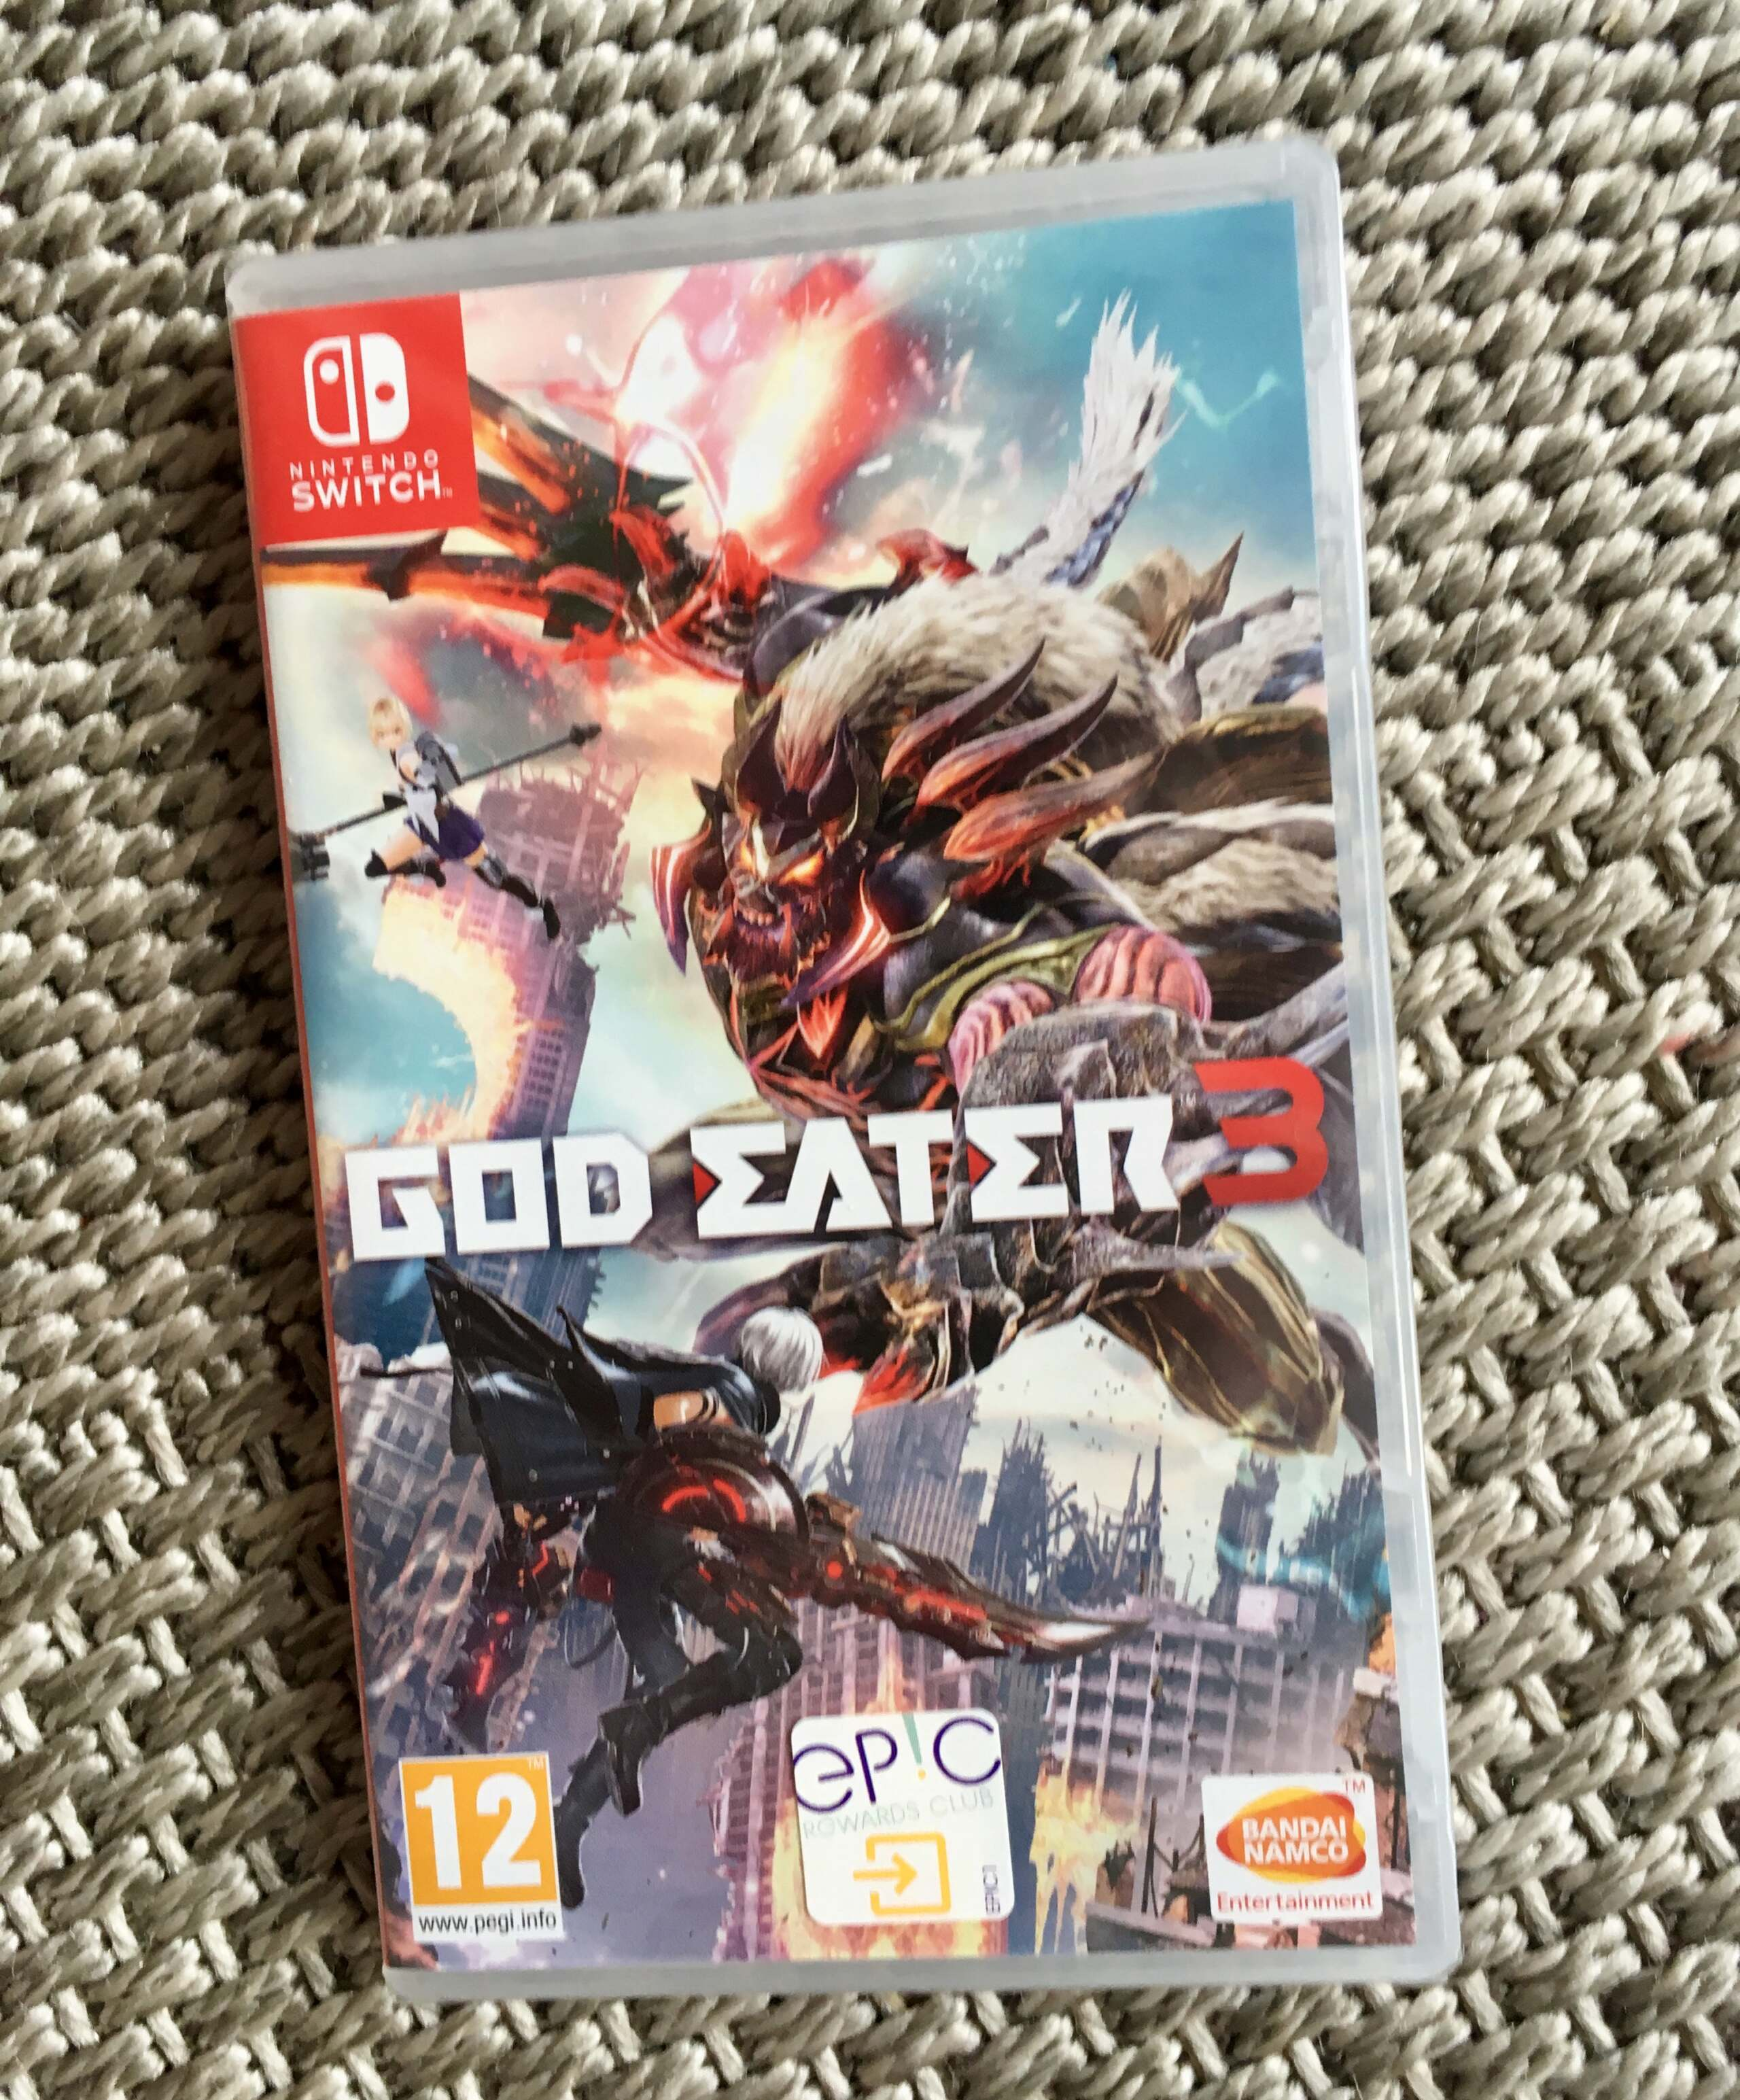 [VDS/ECH] Megaman Zero / ZX collection, God Eater 3 neuf Img_3511